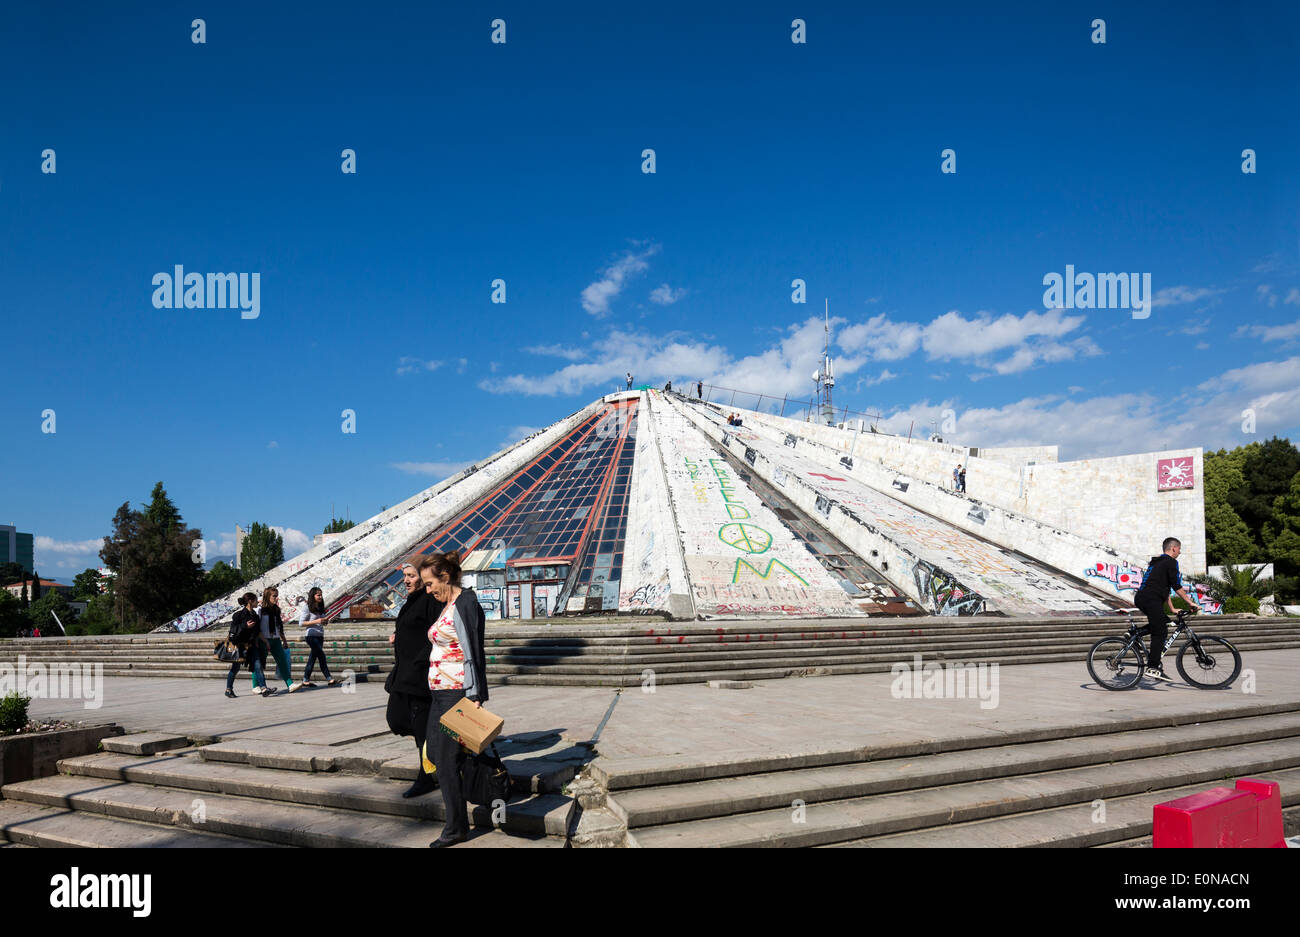 The Pyramid of Tirana, Albania - Stock Image